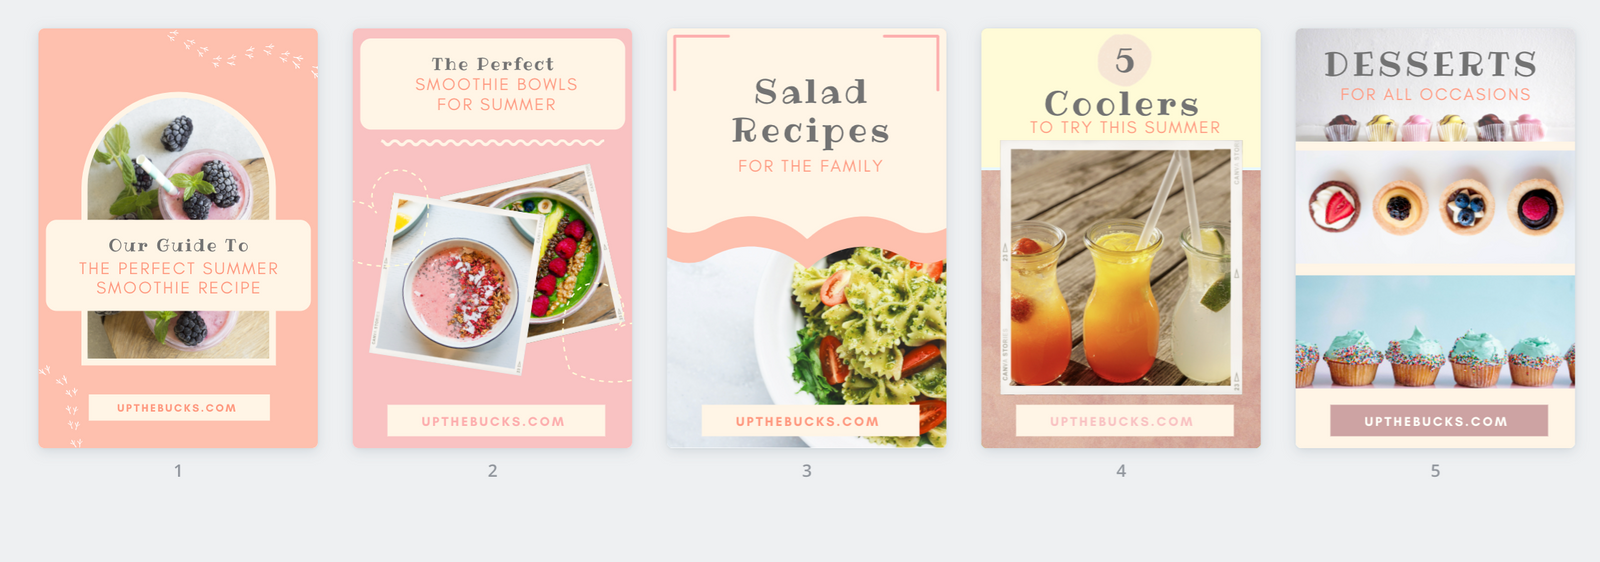 Food and Recipes Pinterest Templates